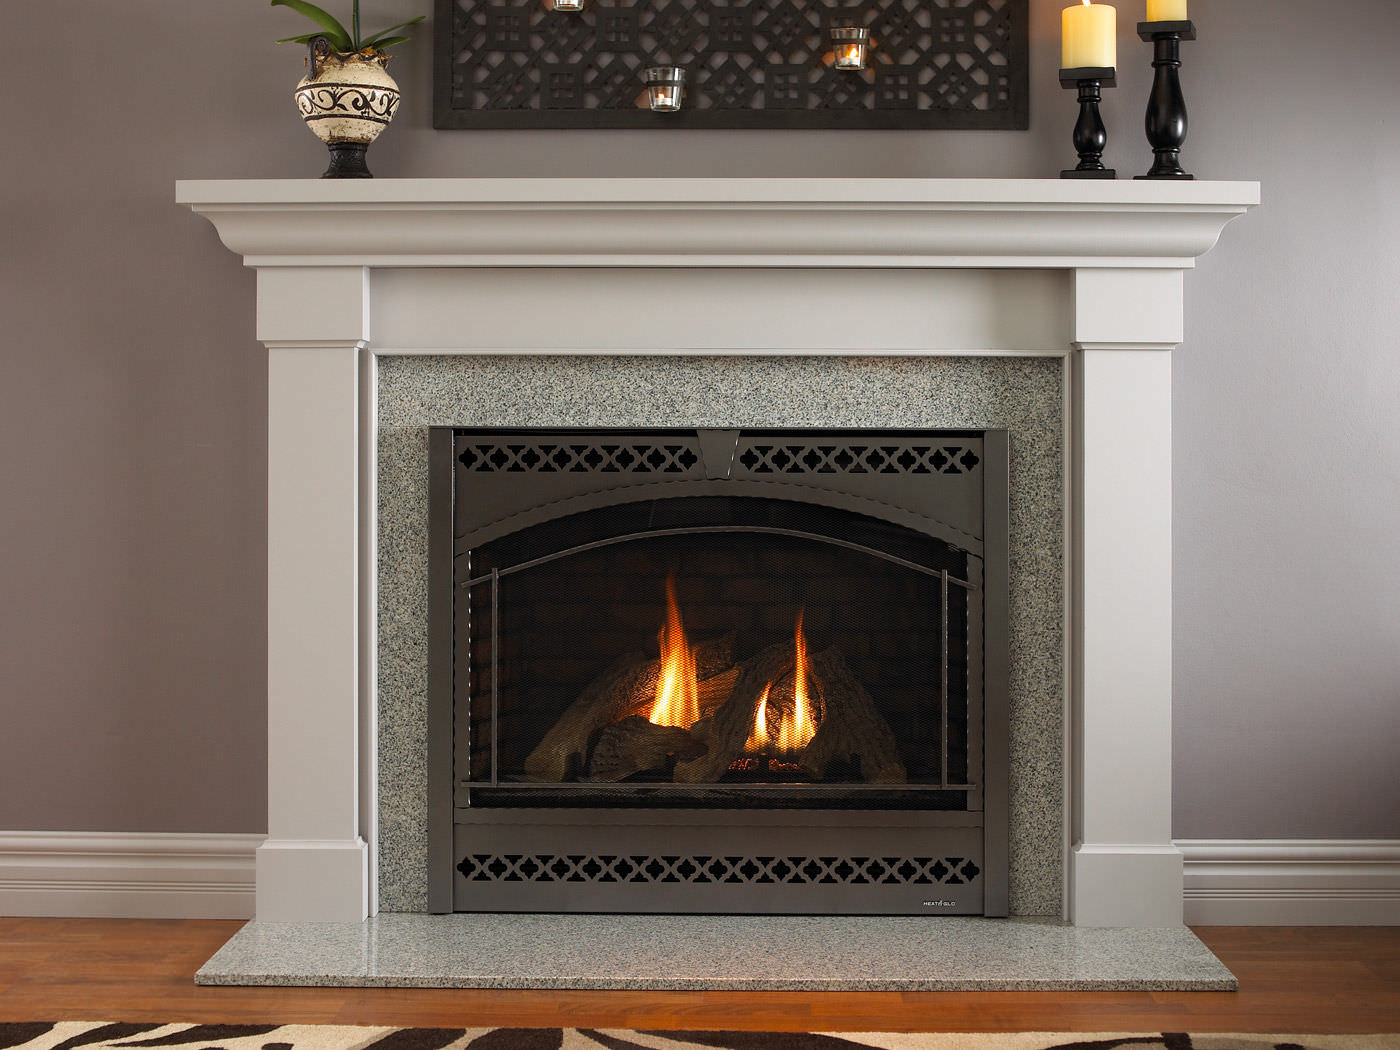 Stone tiles for fireplace hearth fireplace design ideas Fireplace design ideas